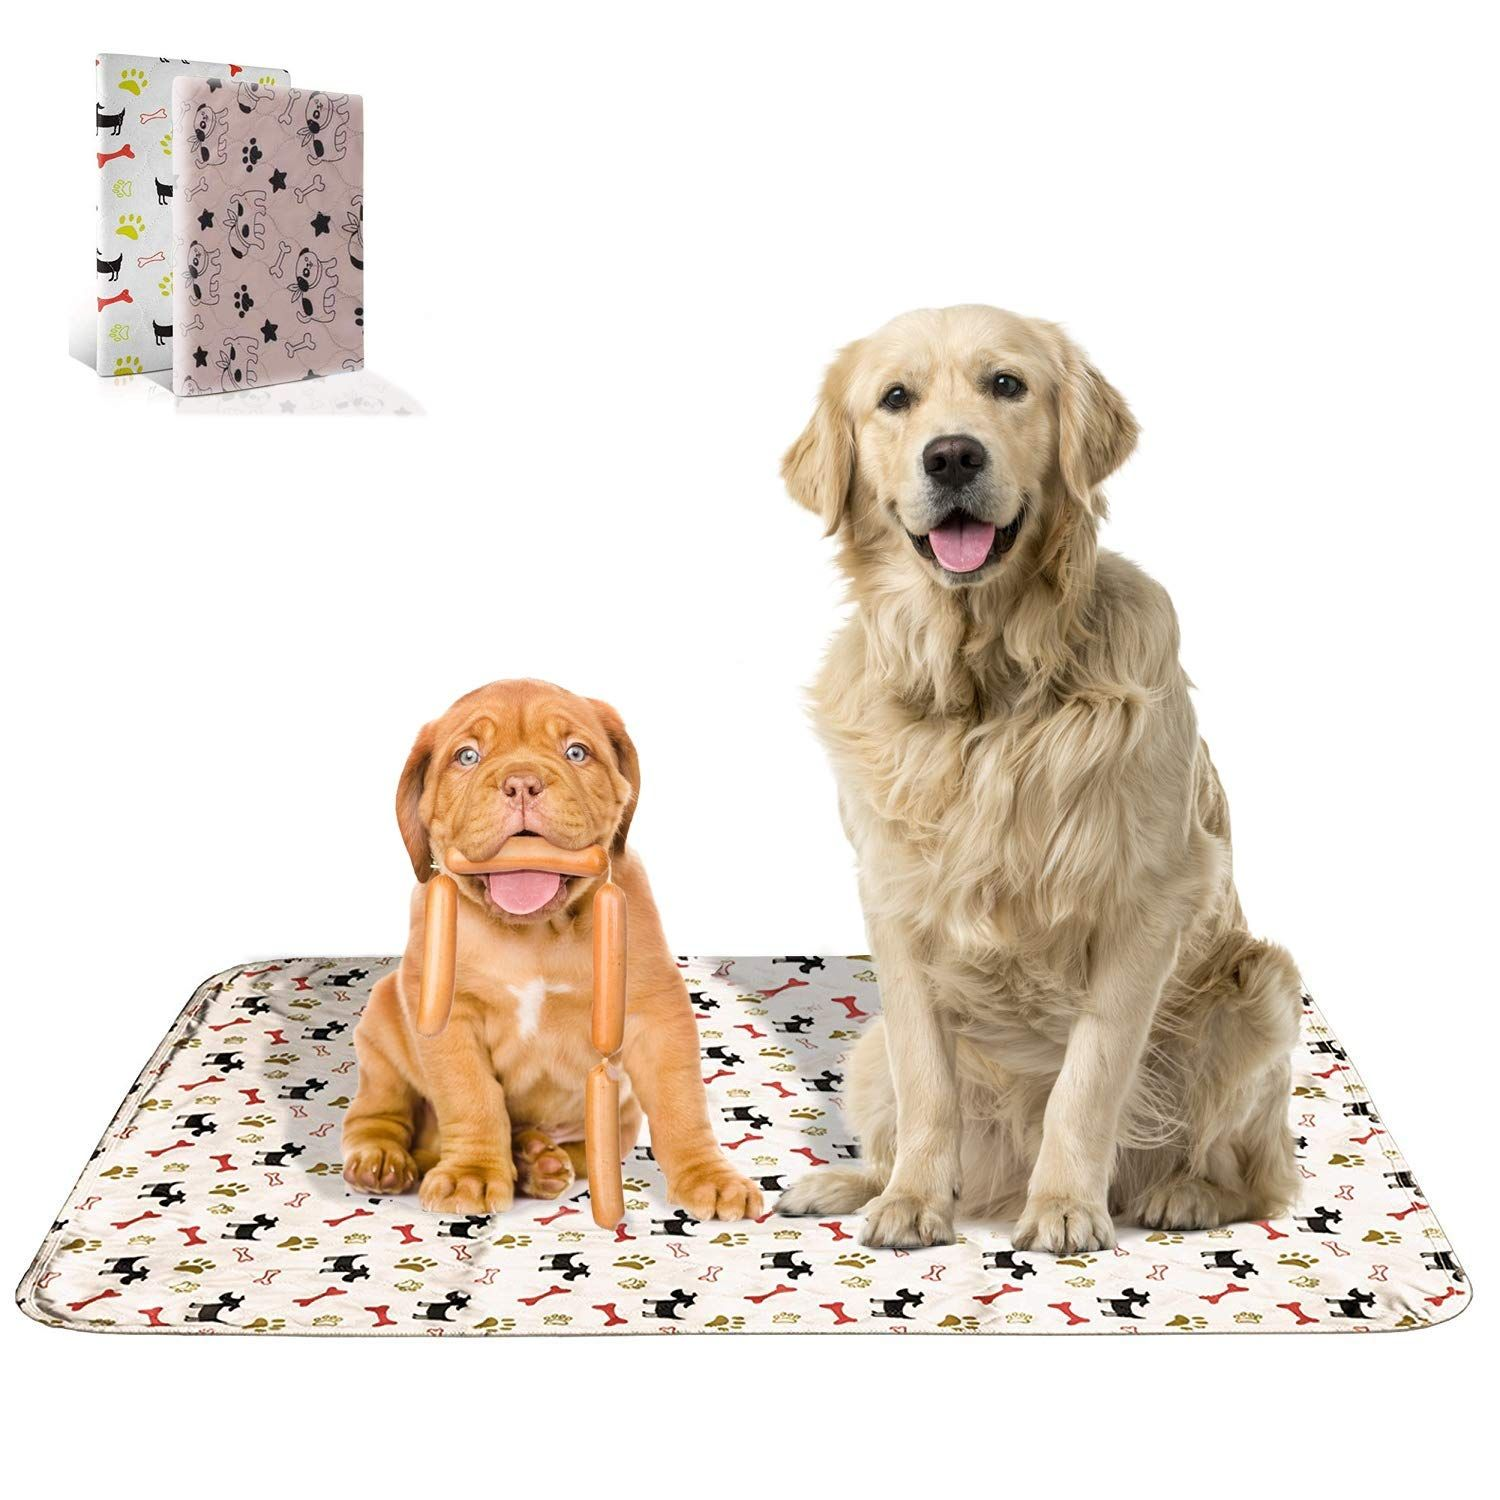 Washable Training Pee Pads For Dogs And Cats 2 Pack Medium 27x31 Absorbent Travel Pee Pads For Dogs Machine Washable And Dog Mess Dog Training Pads Dogs